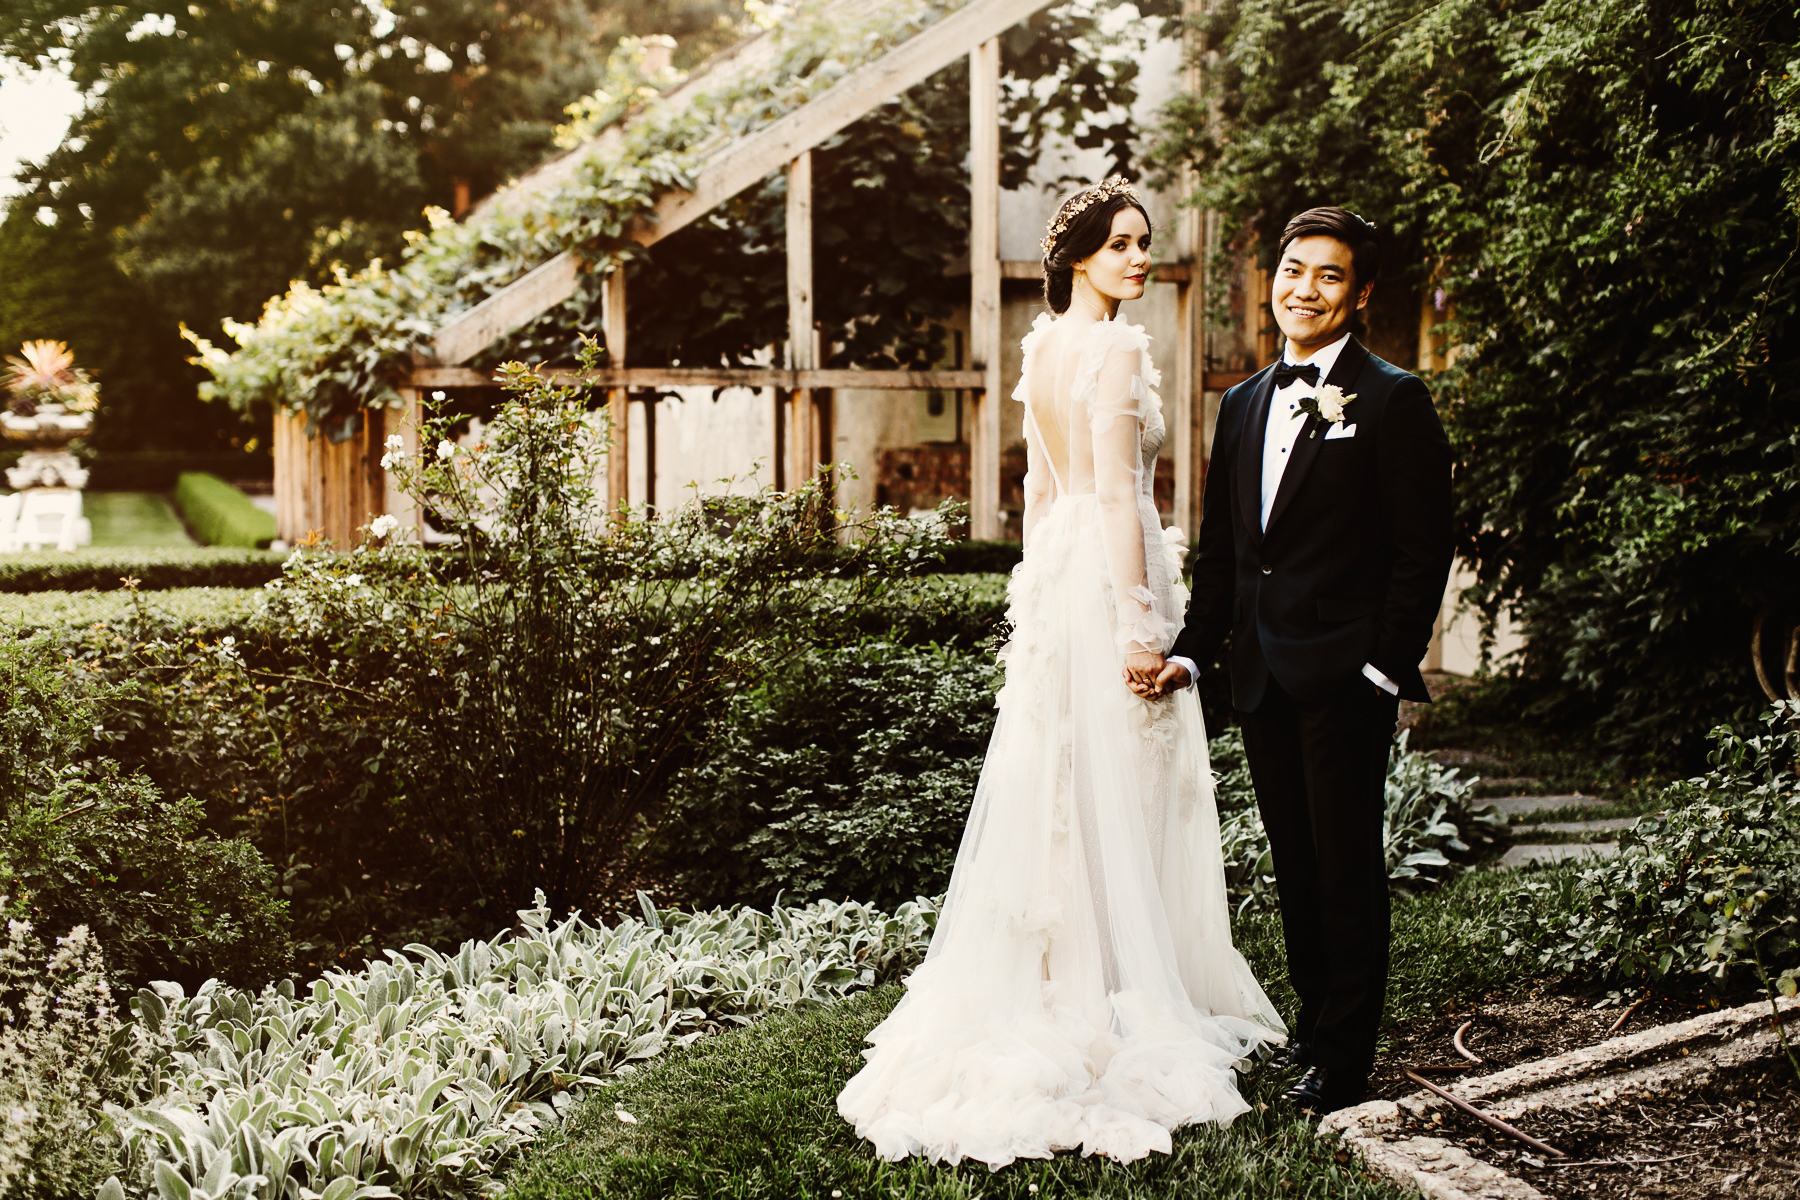 French Garden Wedding . Andalusia Wedding Photography » Pat Furey ...